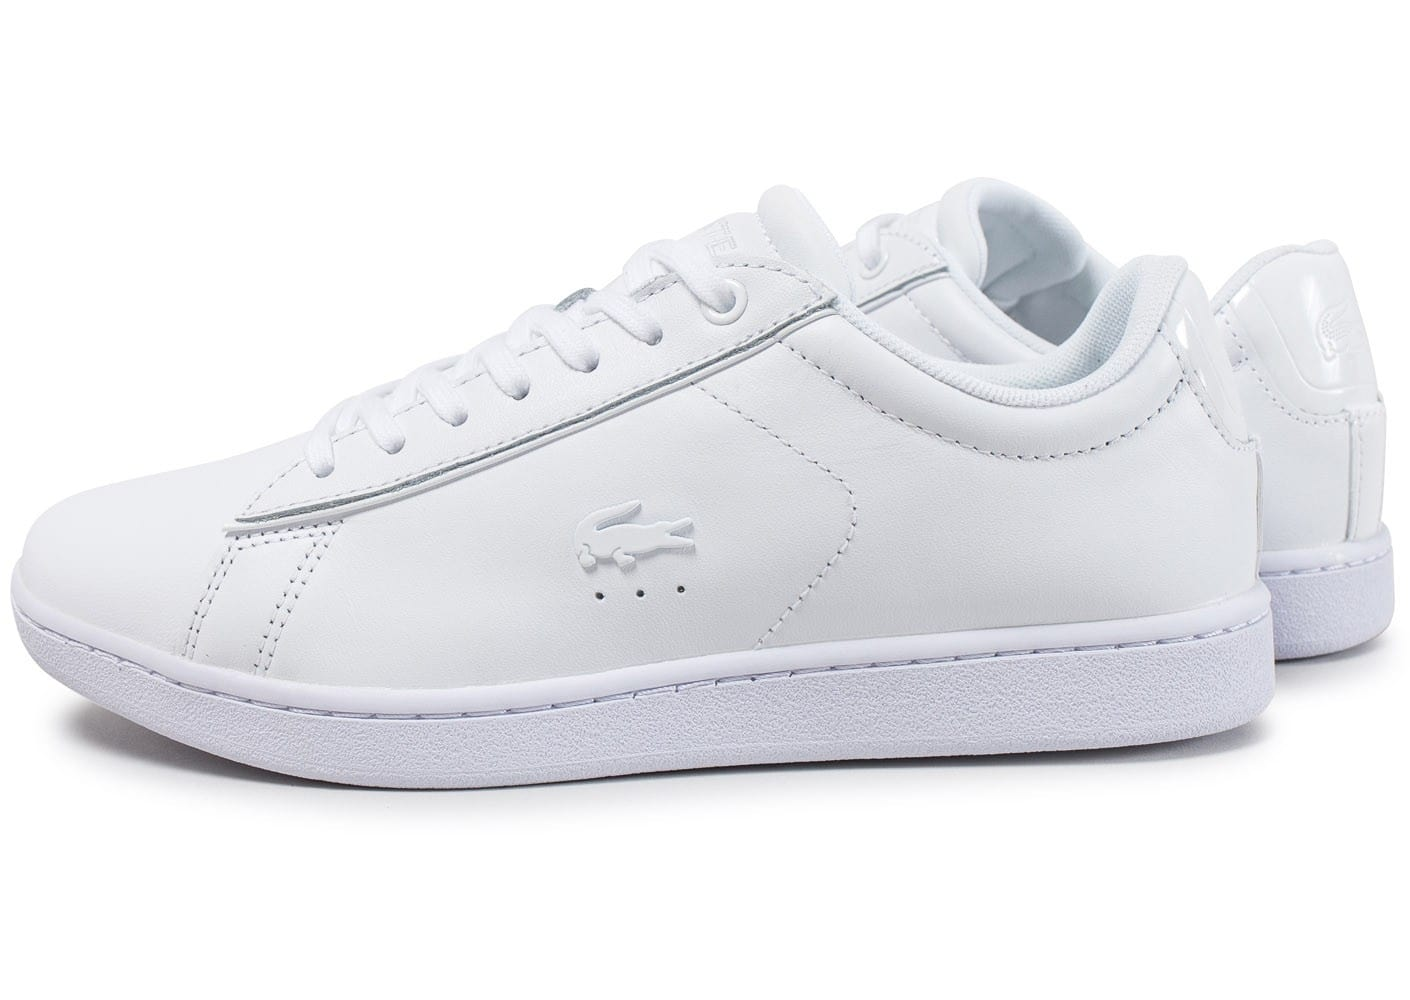 417 Chaussures Femme Baskets Lacoste Carnaby Spw Blanche Evo wiTlOkuZPX